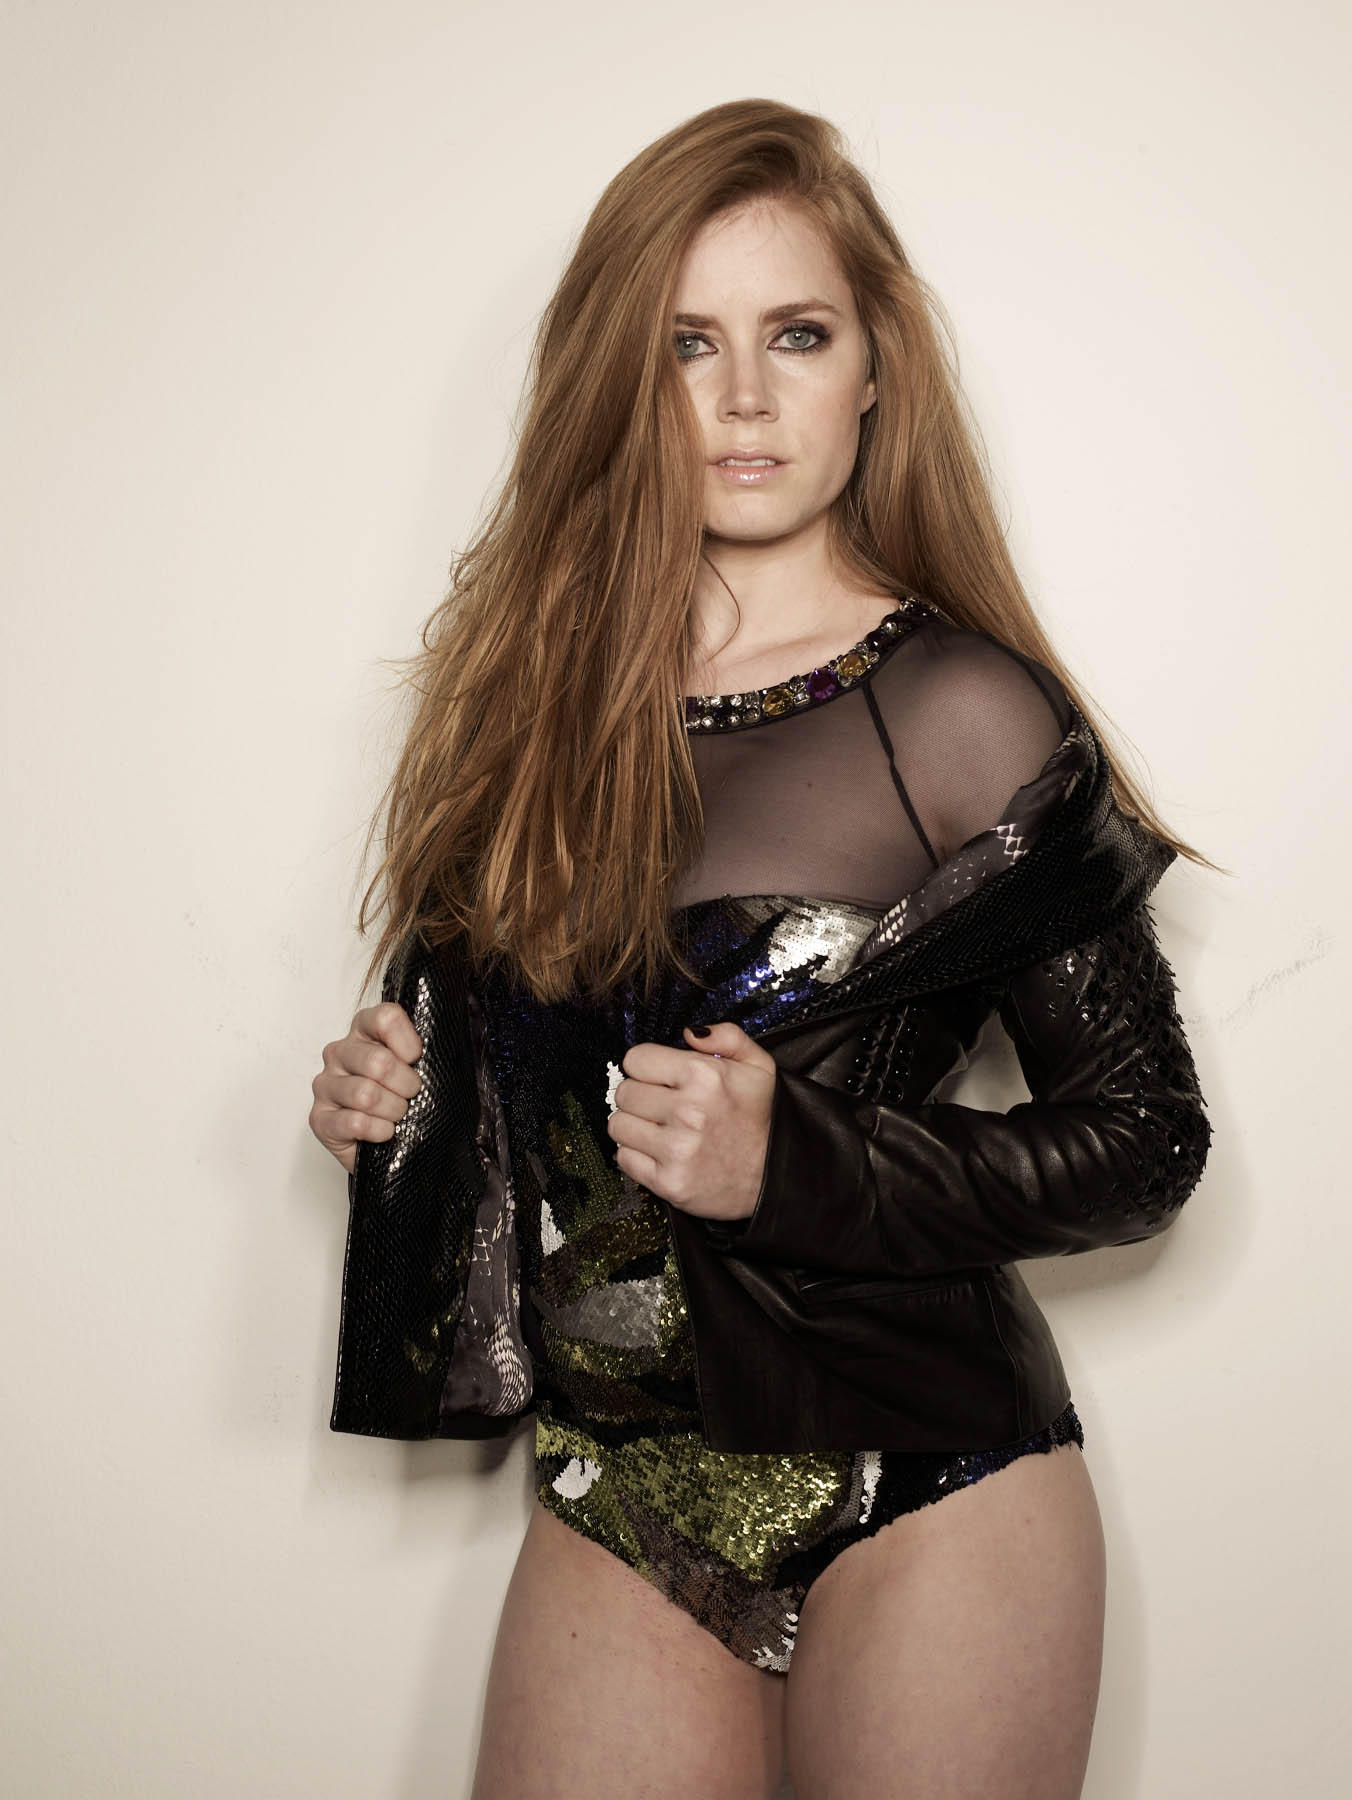 100 Pictures of Amy Adams Hot Pictures